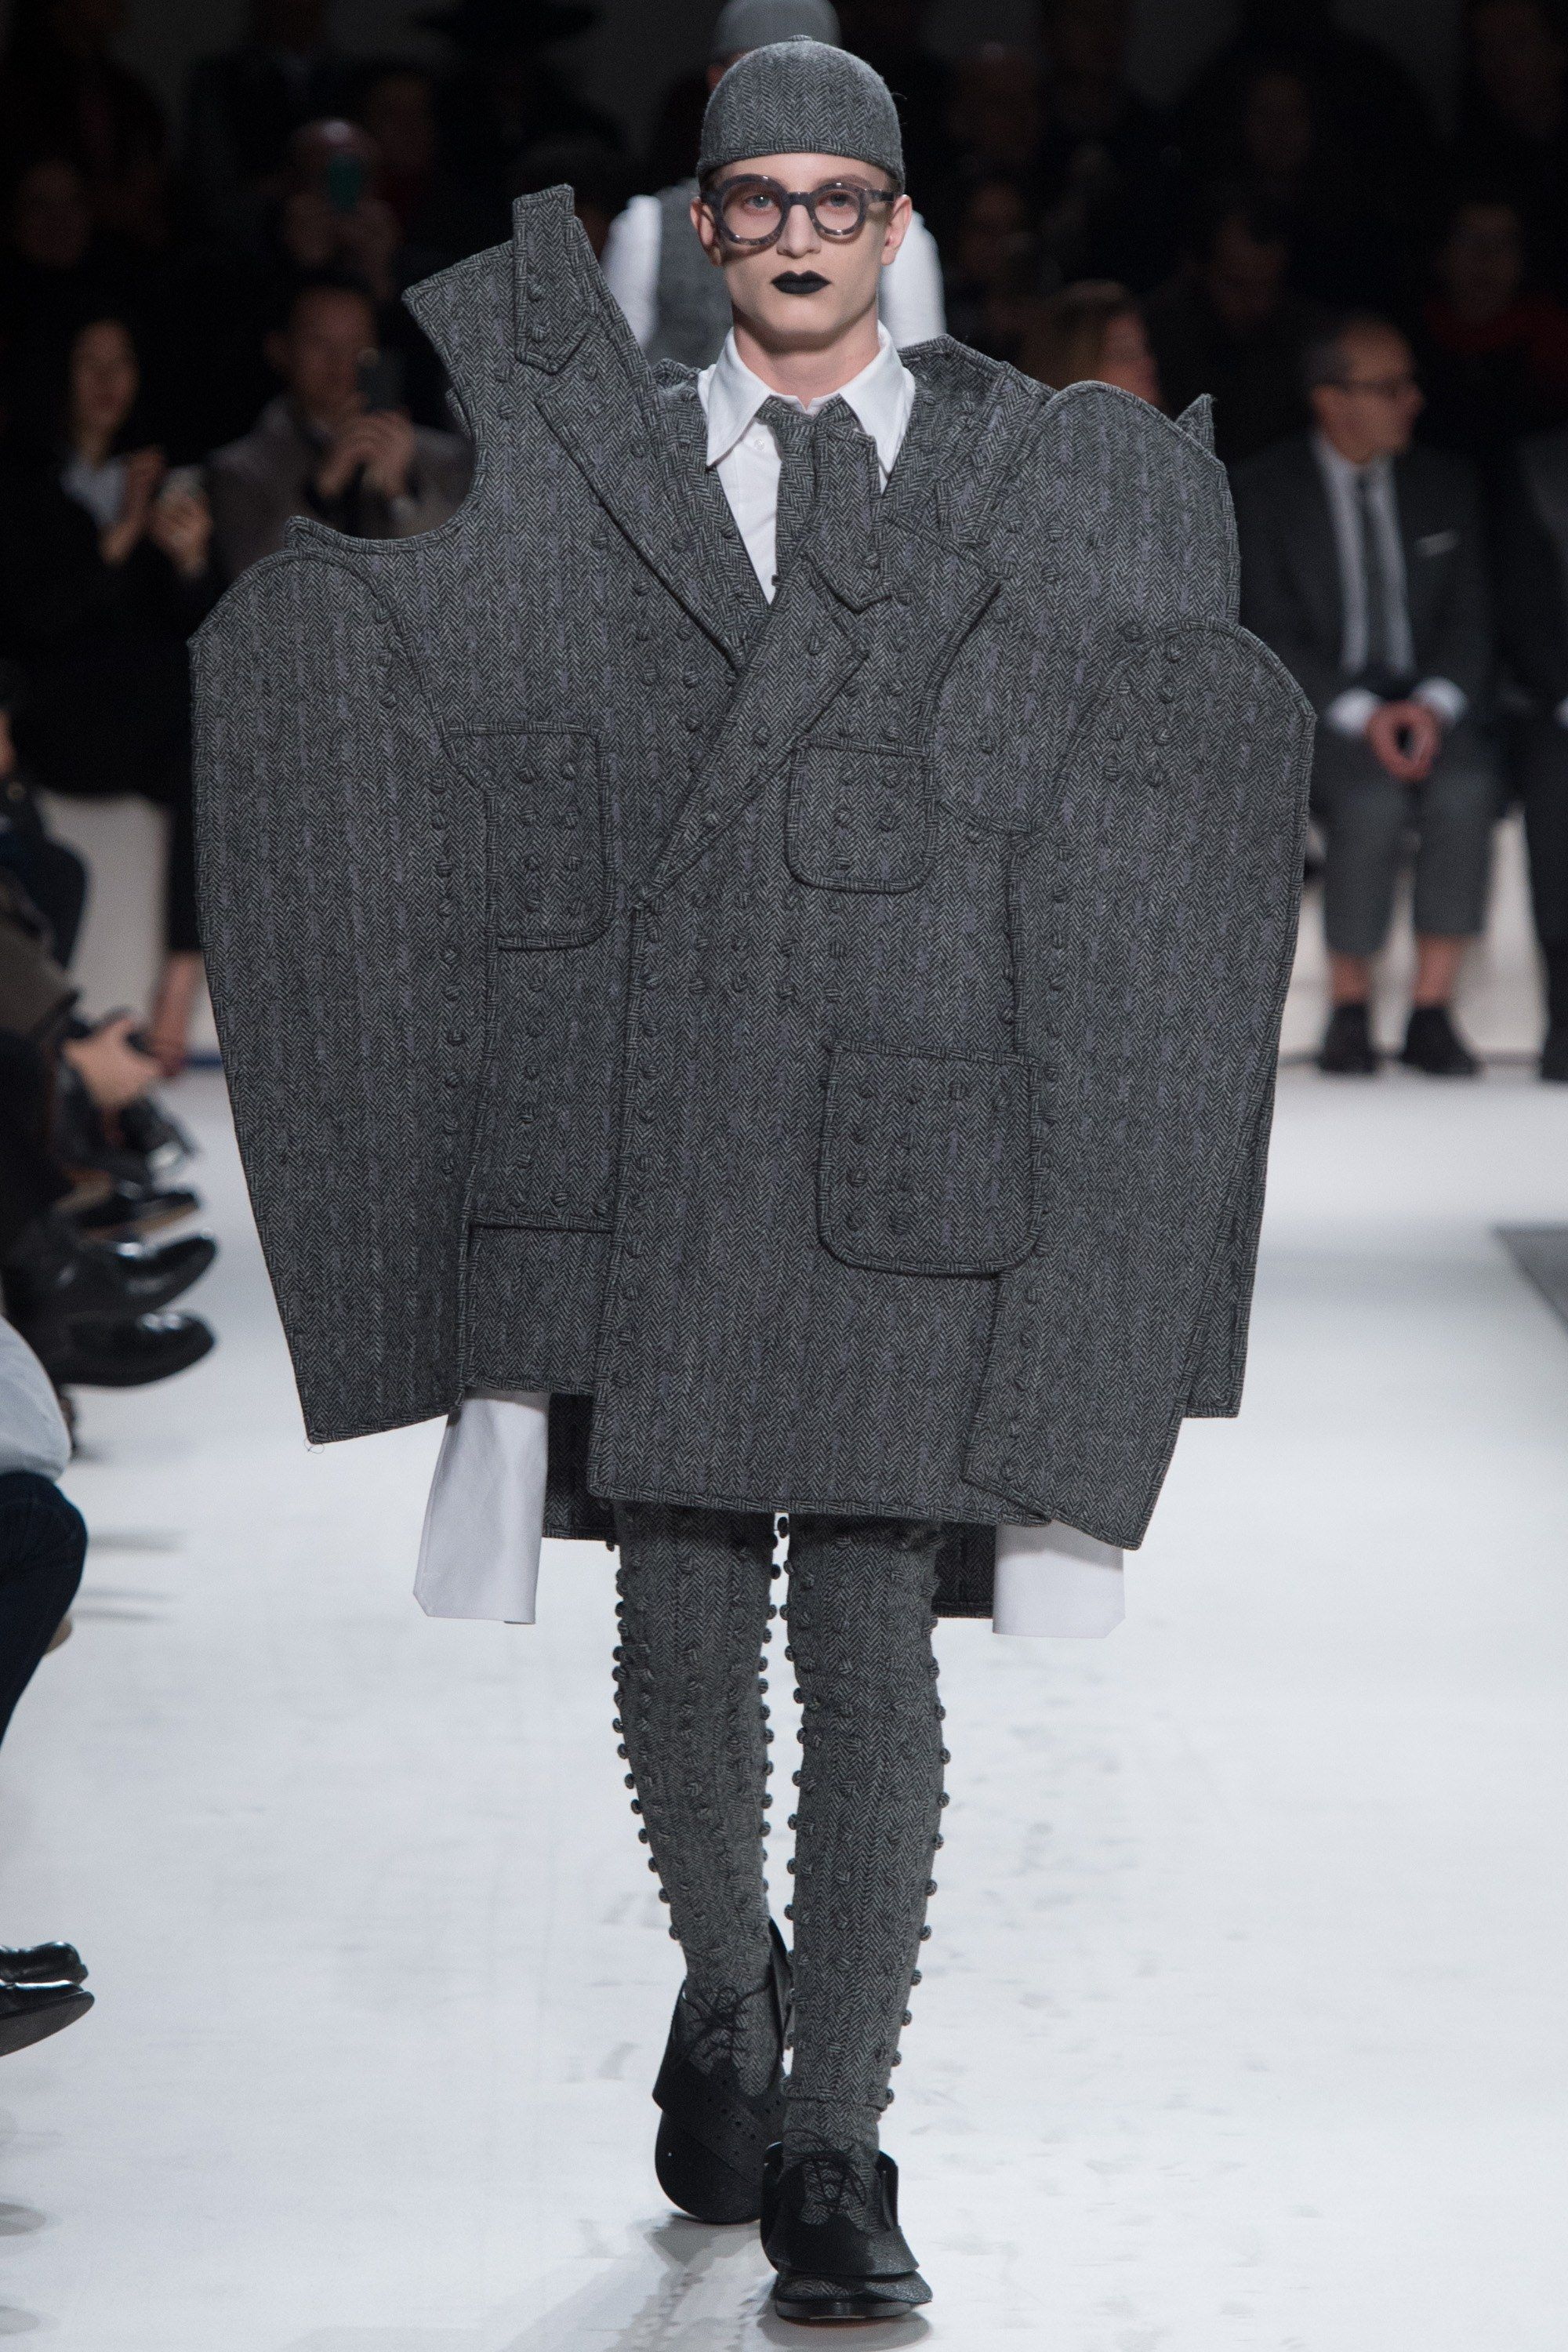 c95ee63a09b Thom Browne Fall 2017 Menswear Collection Photos - Vogue